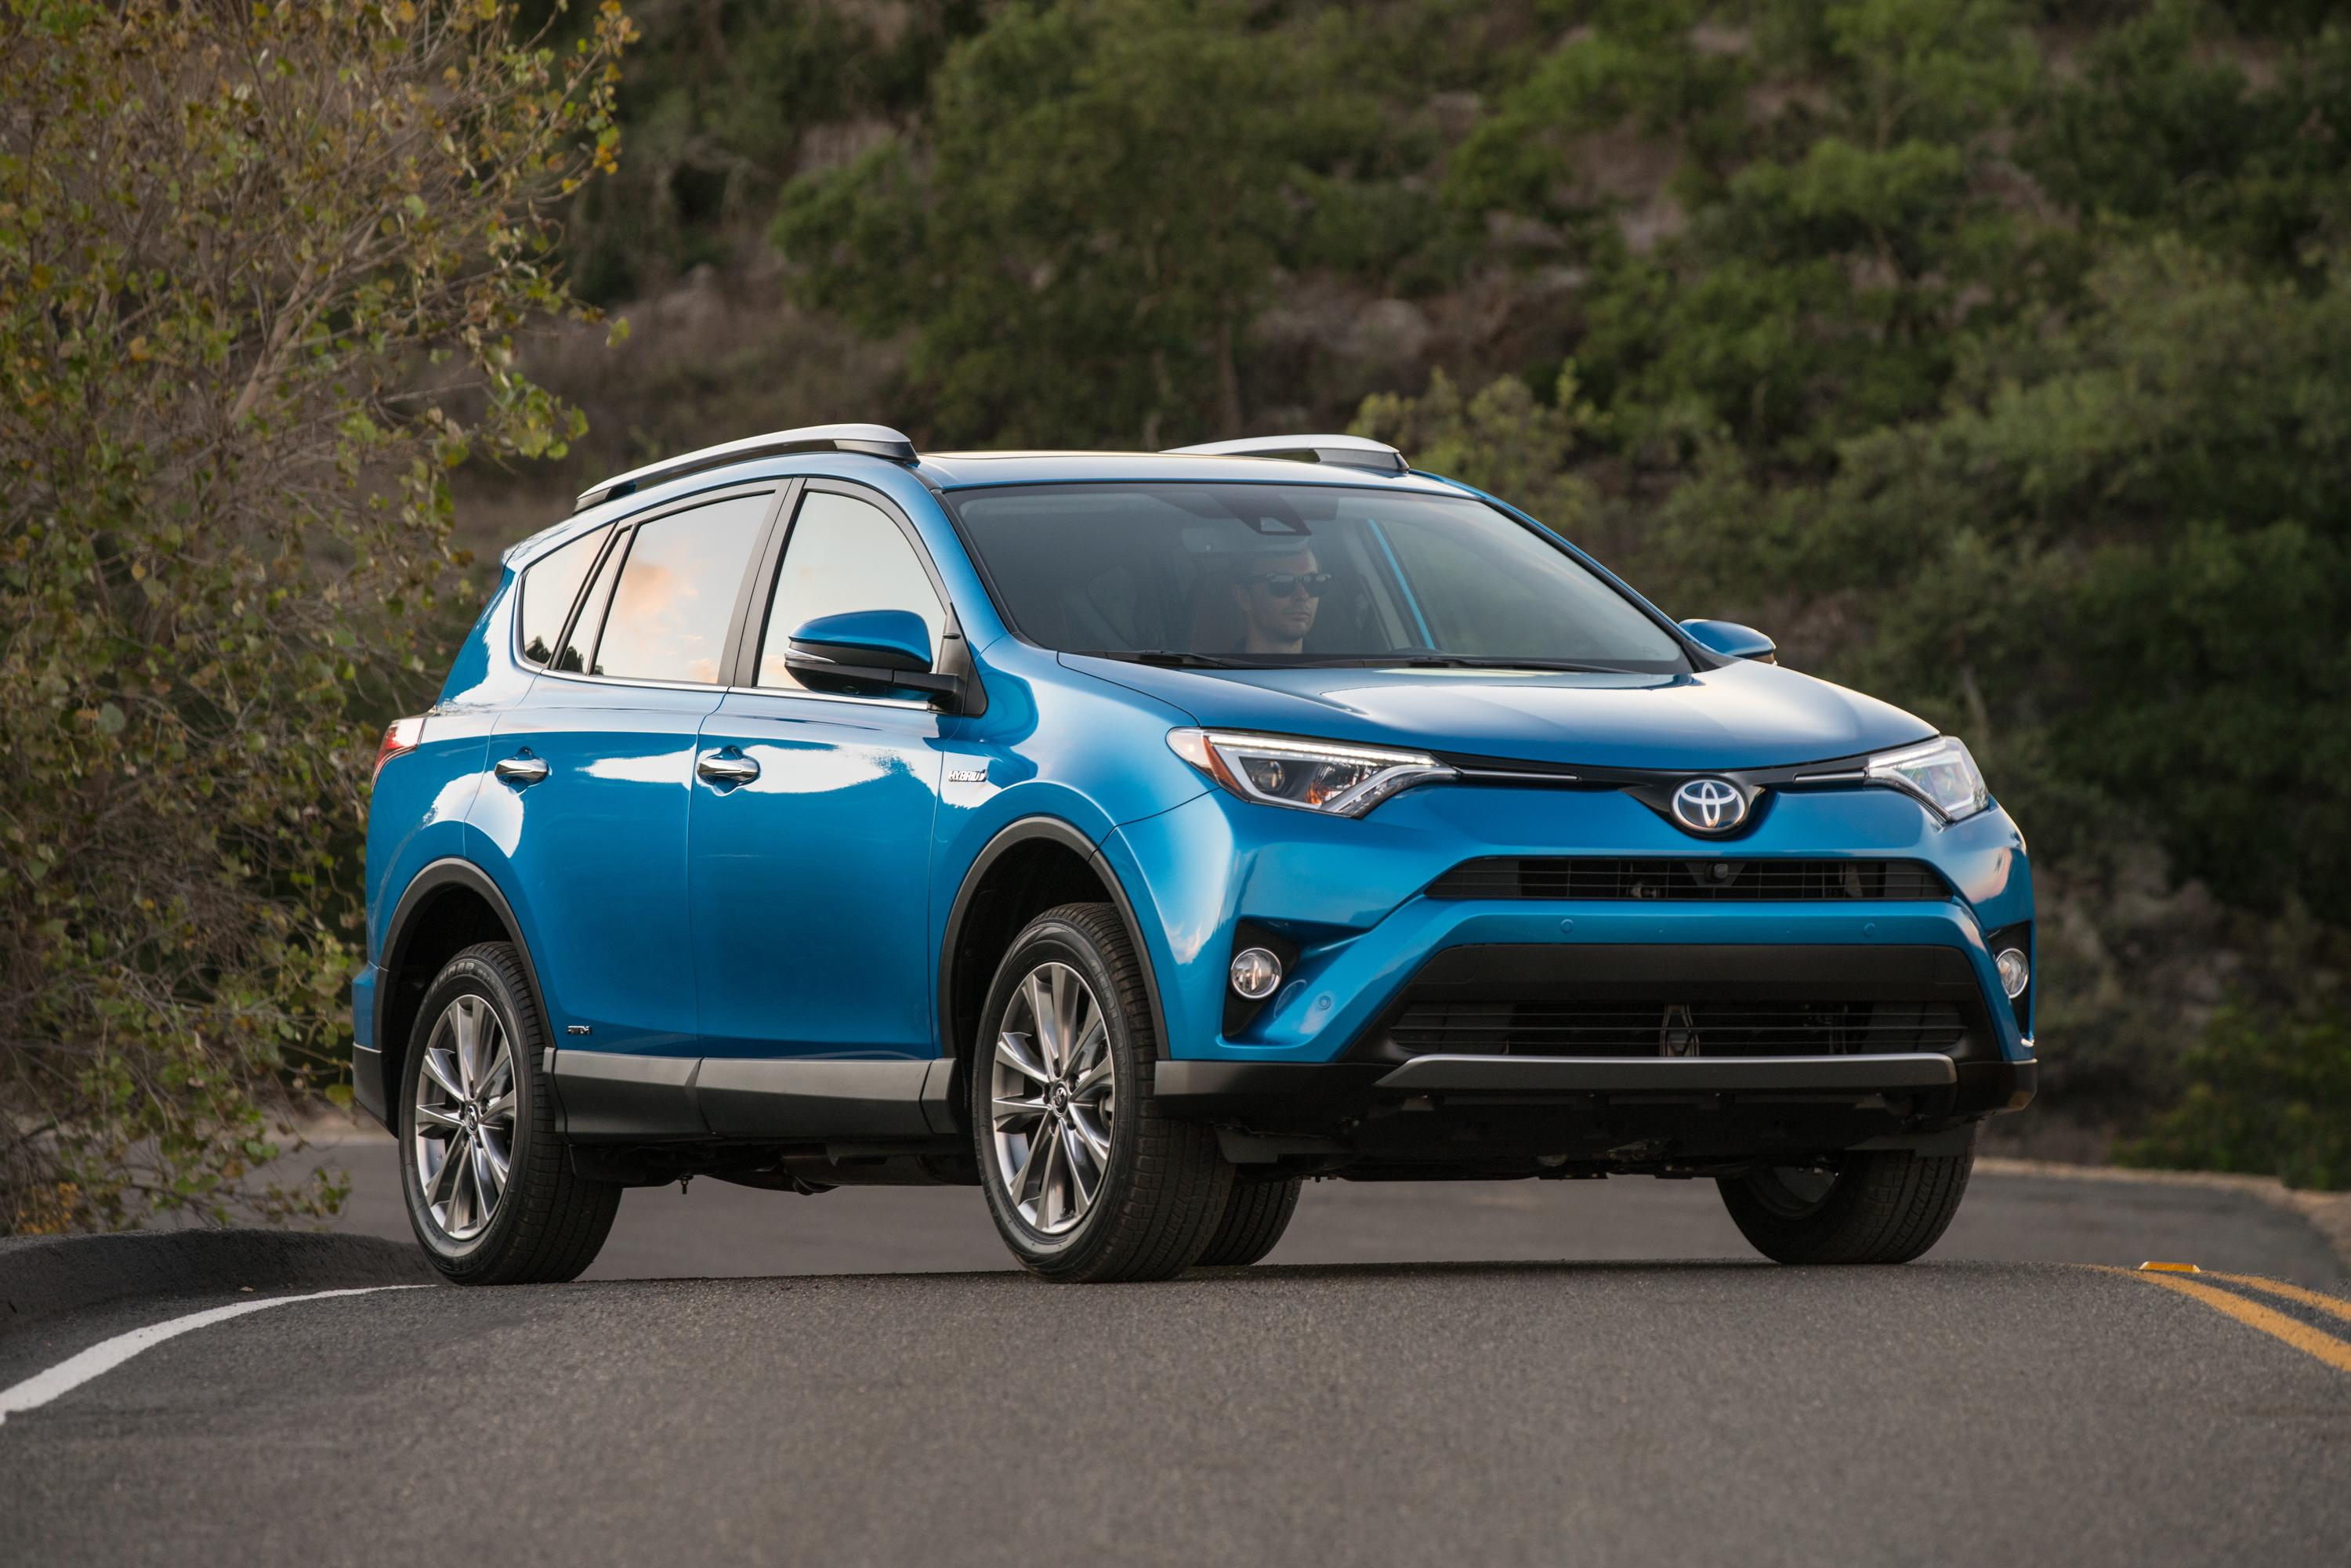 2017 Toyota Rav4 Hybrid At Hometown Toyota Near Boise